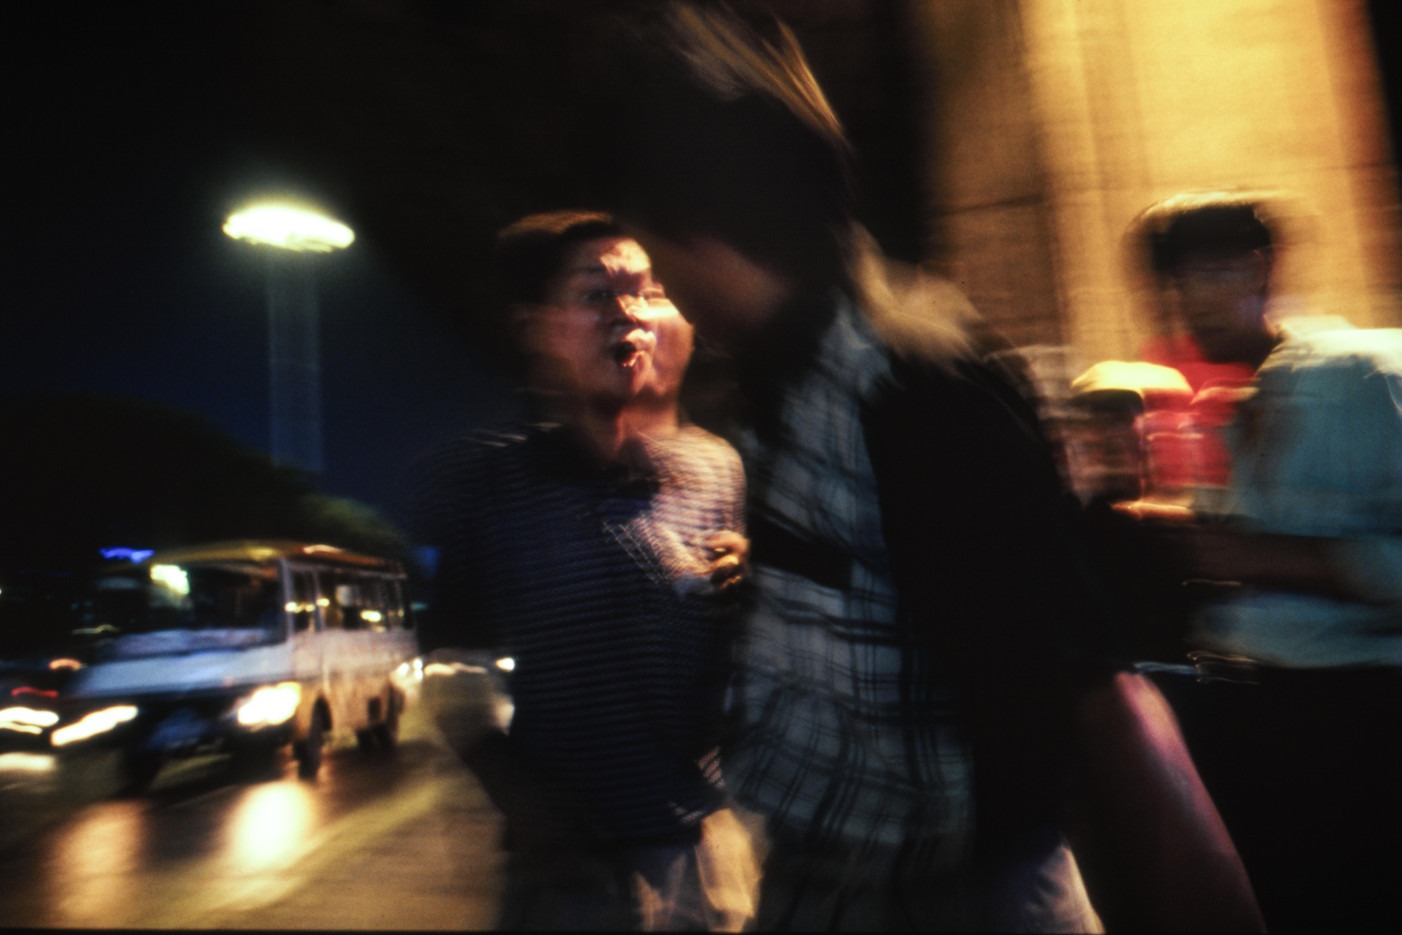 From the Terminal Station, Guangzhou 1997 #15